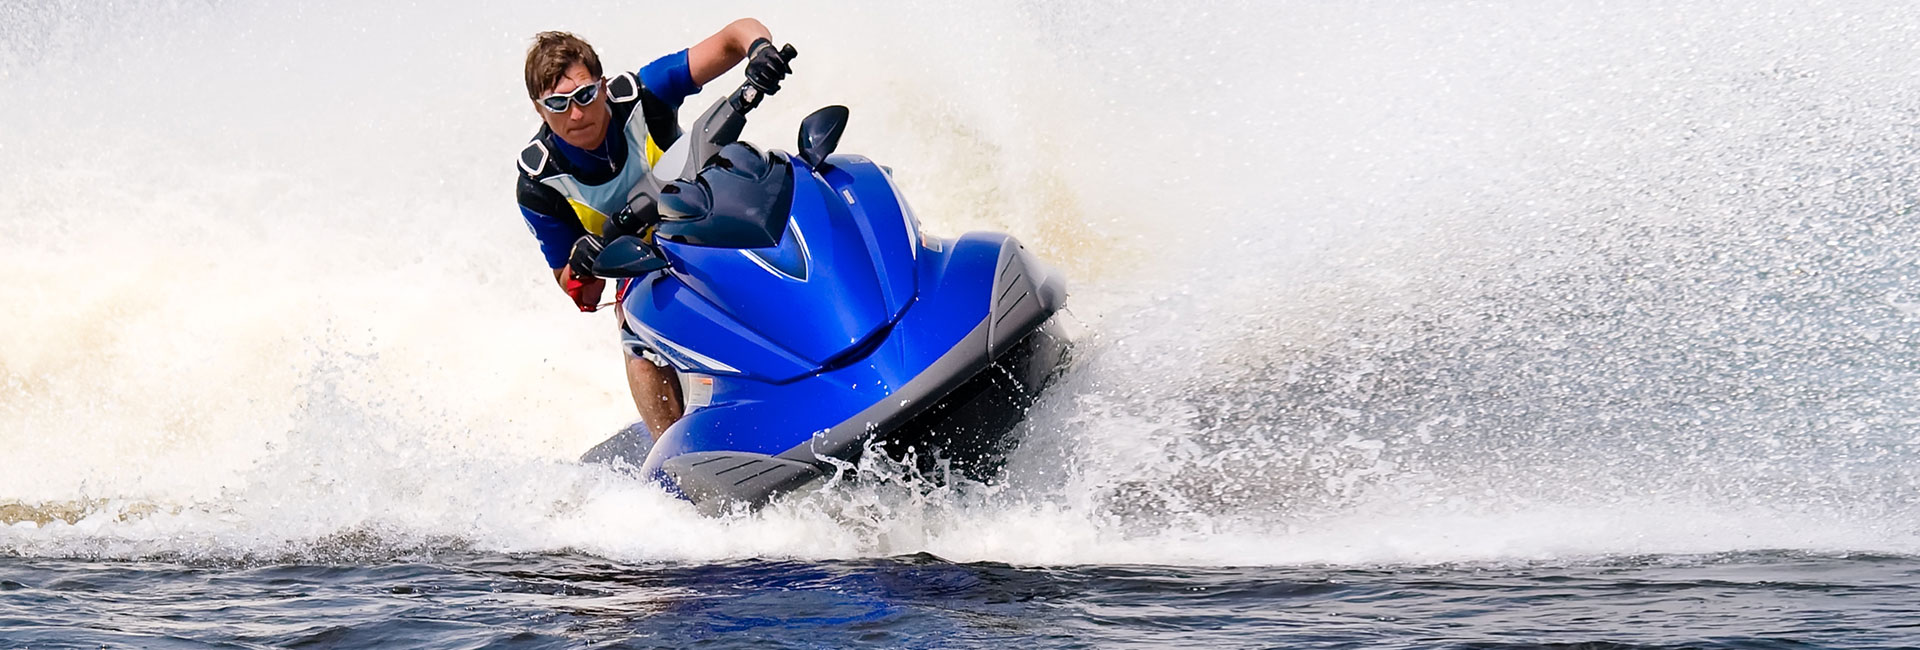 VARTA® batteries are the smart choice for riders of PWC Personal Watercraft such as Jetski and Seadoo in the open water.